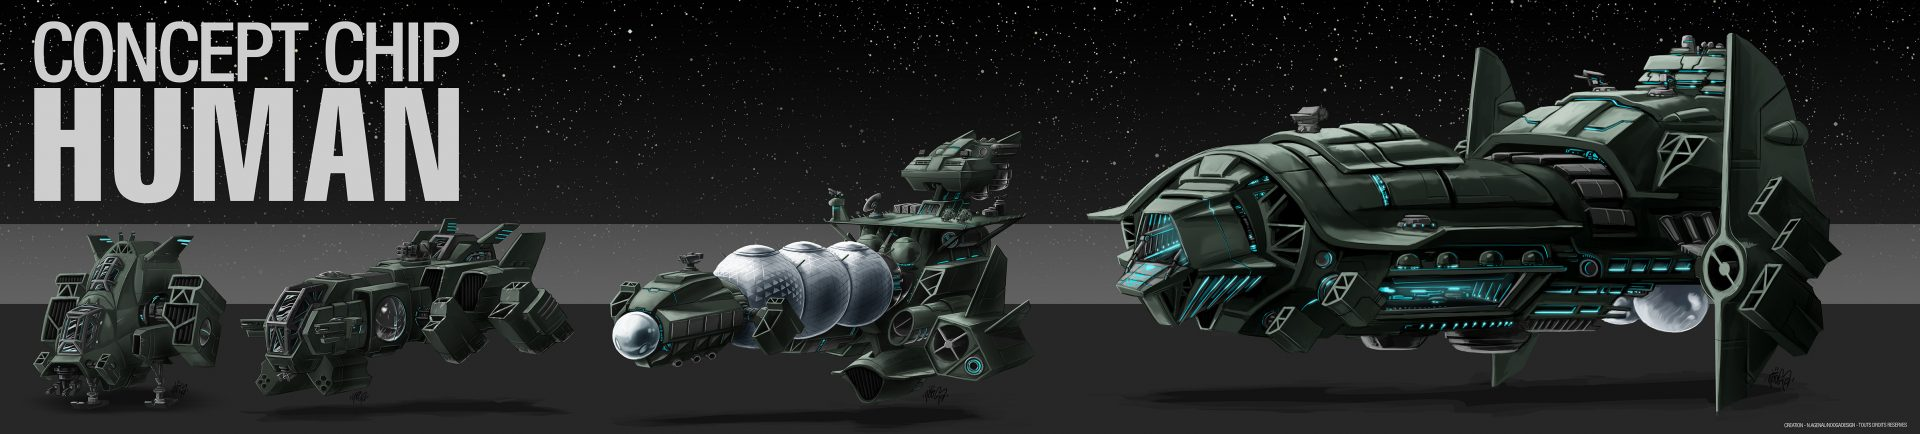 deadspace-human-ships-concept-light